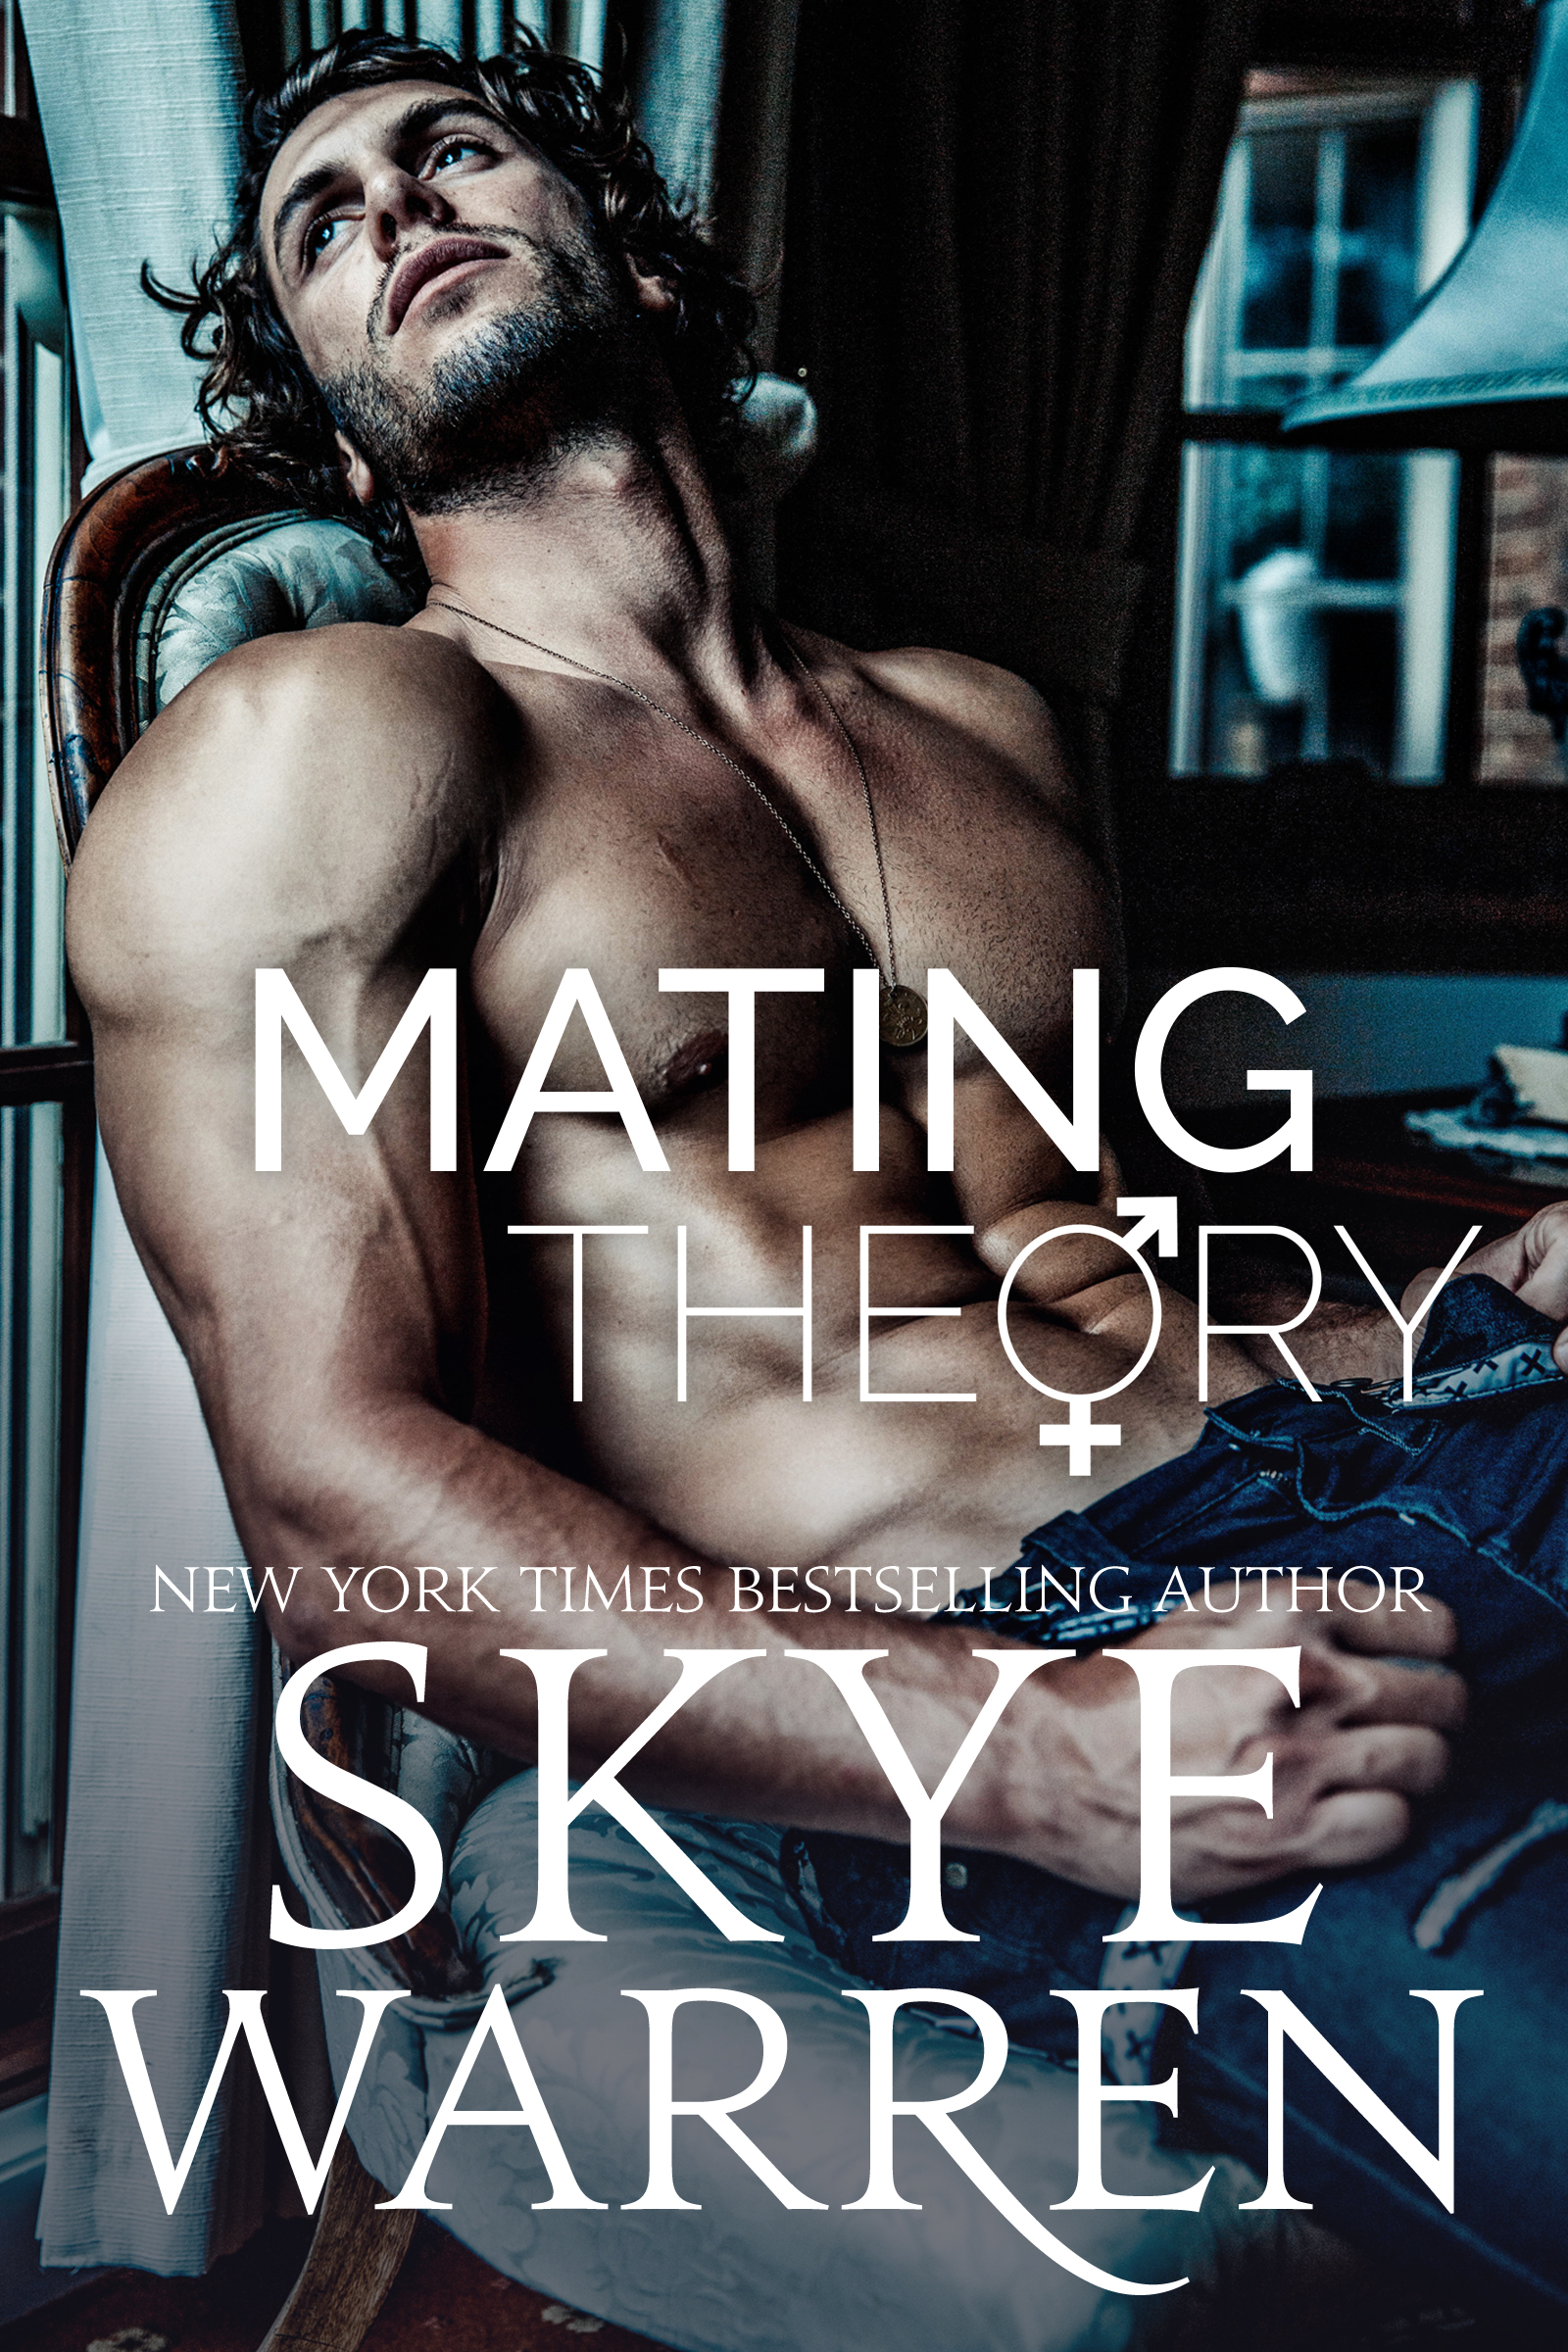 Copy-of-MatingTheory-COVER.jpg